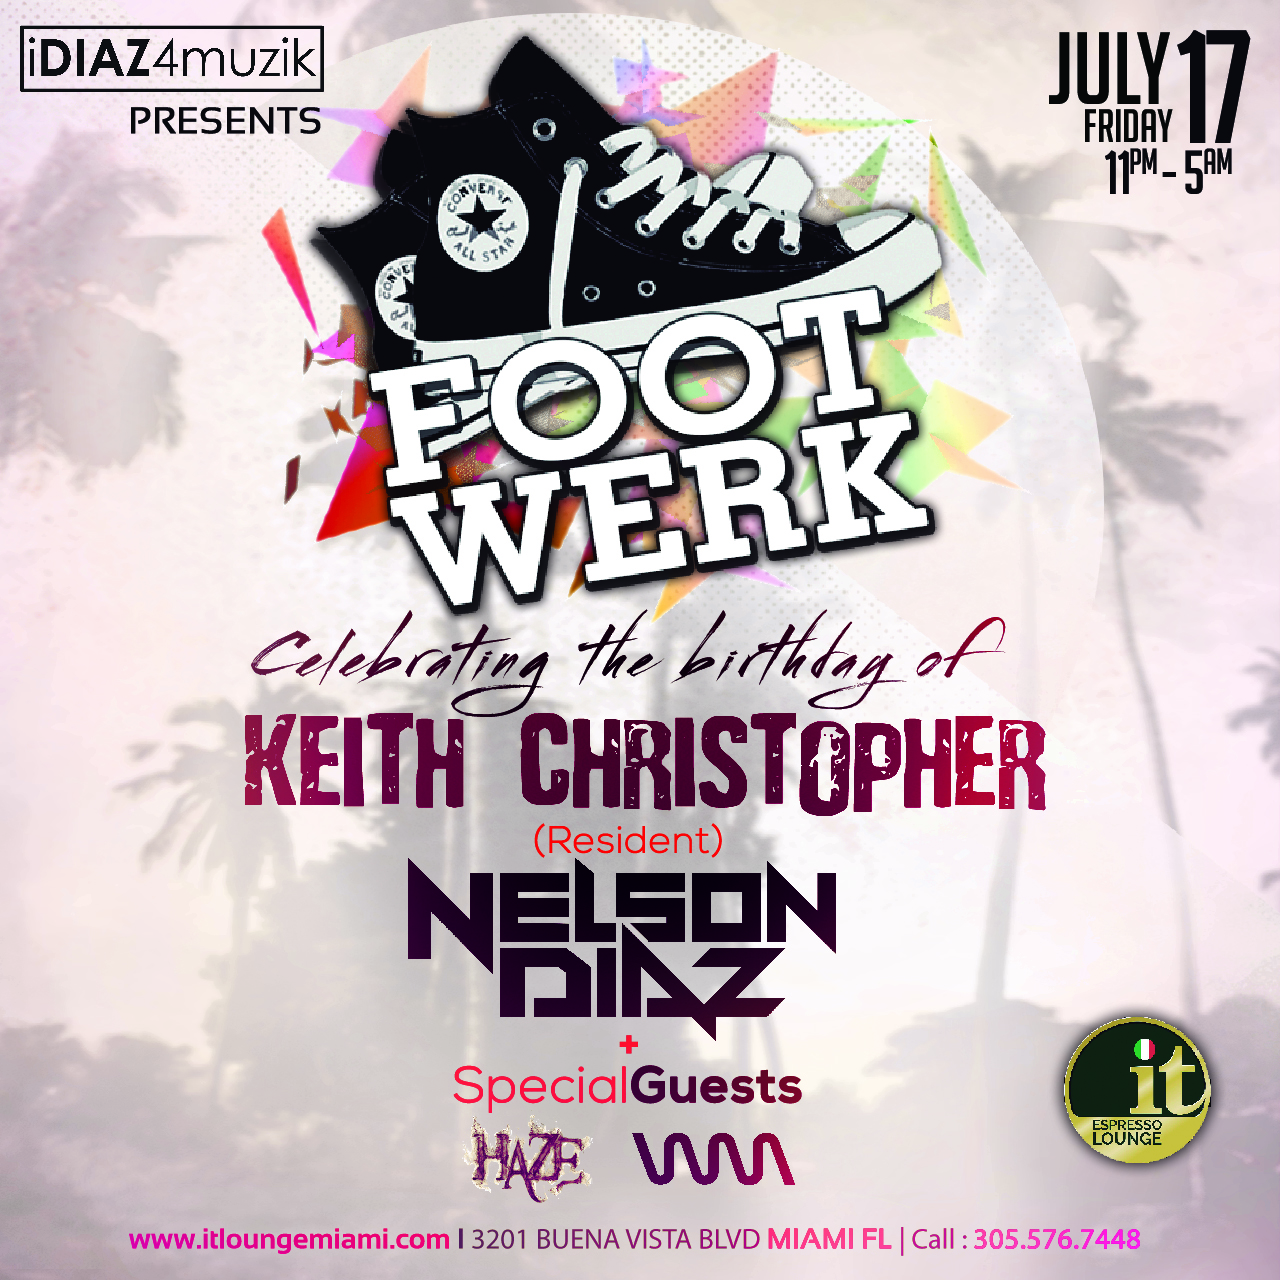 FootWerk Celebrates Keith Christopher's Birthday